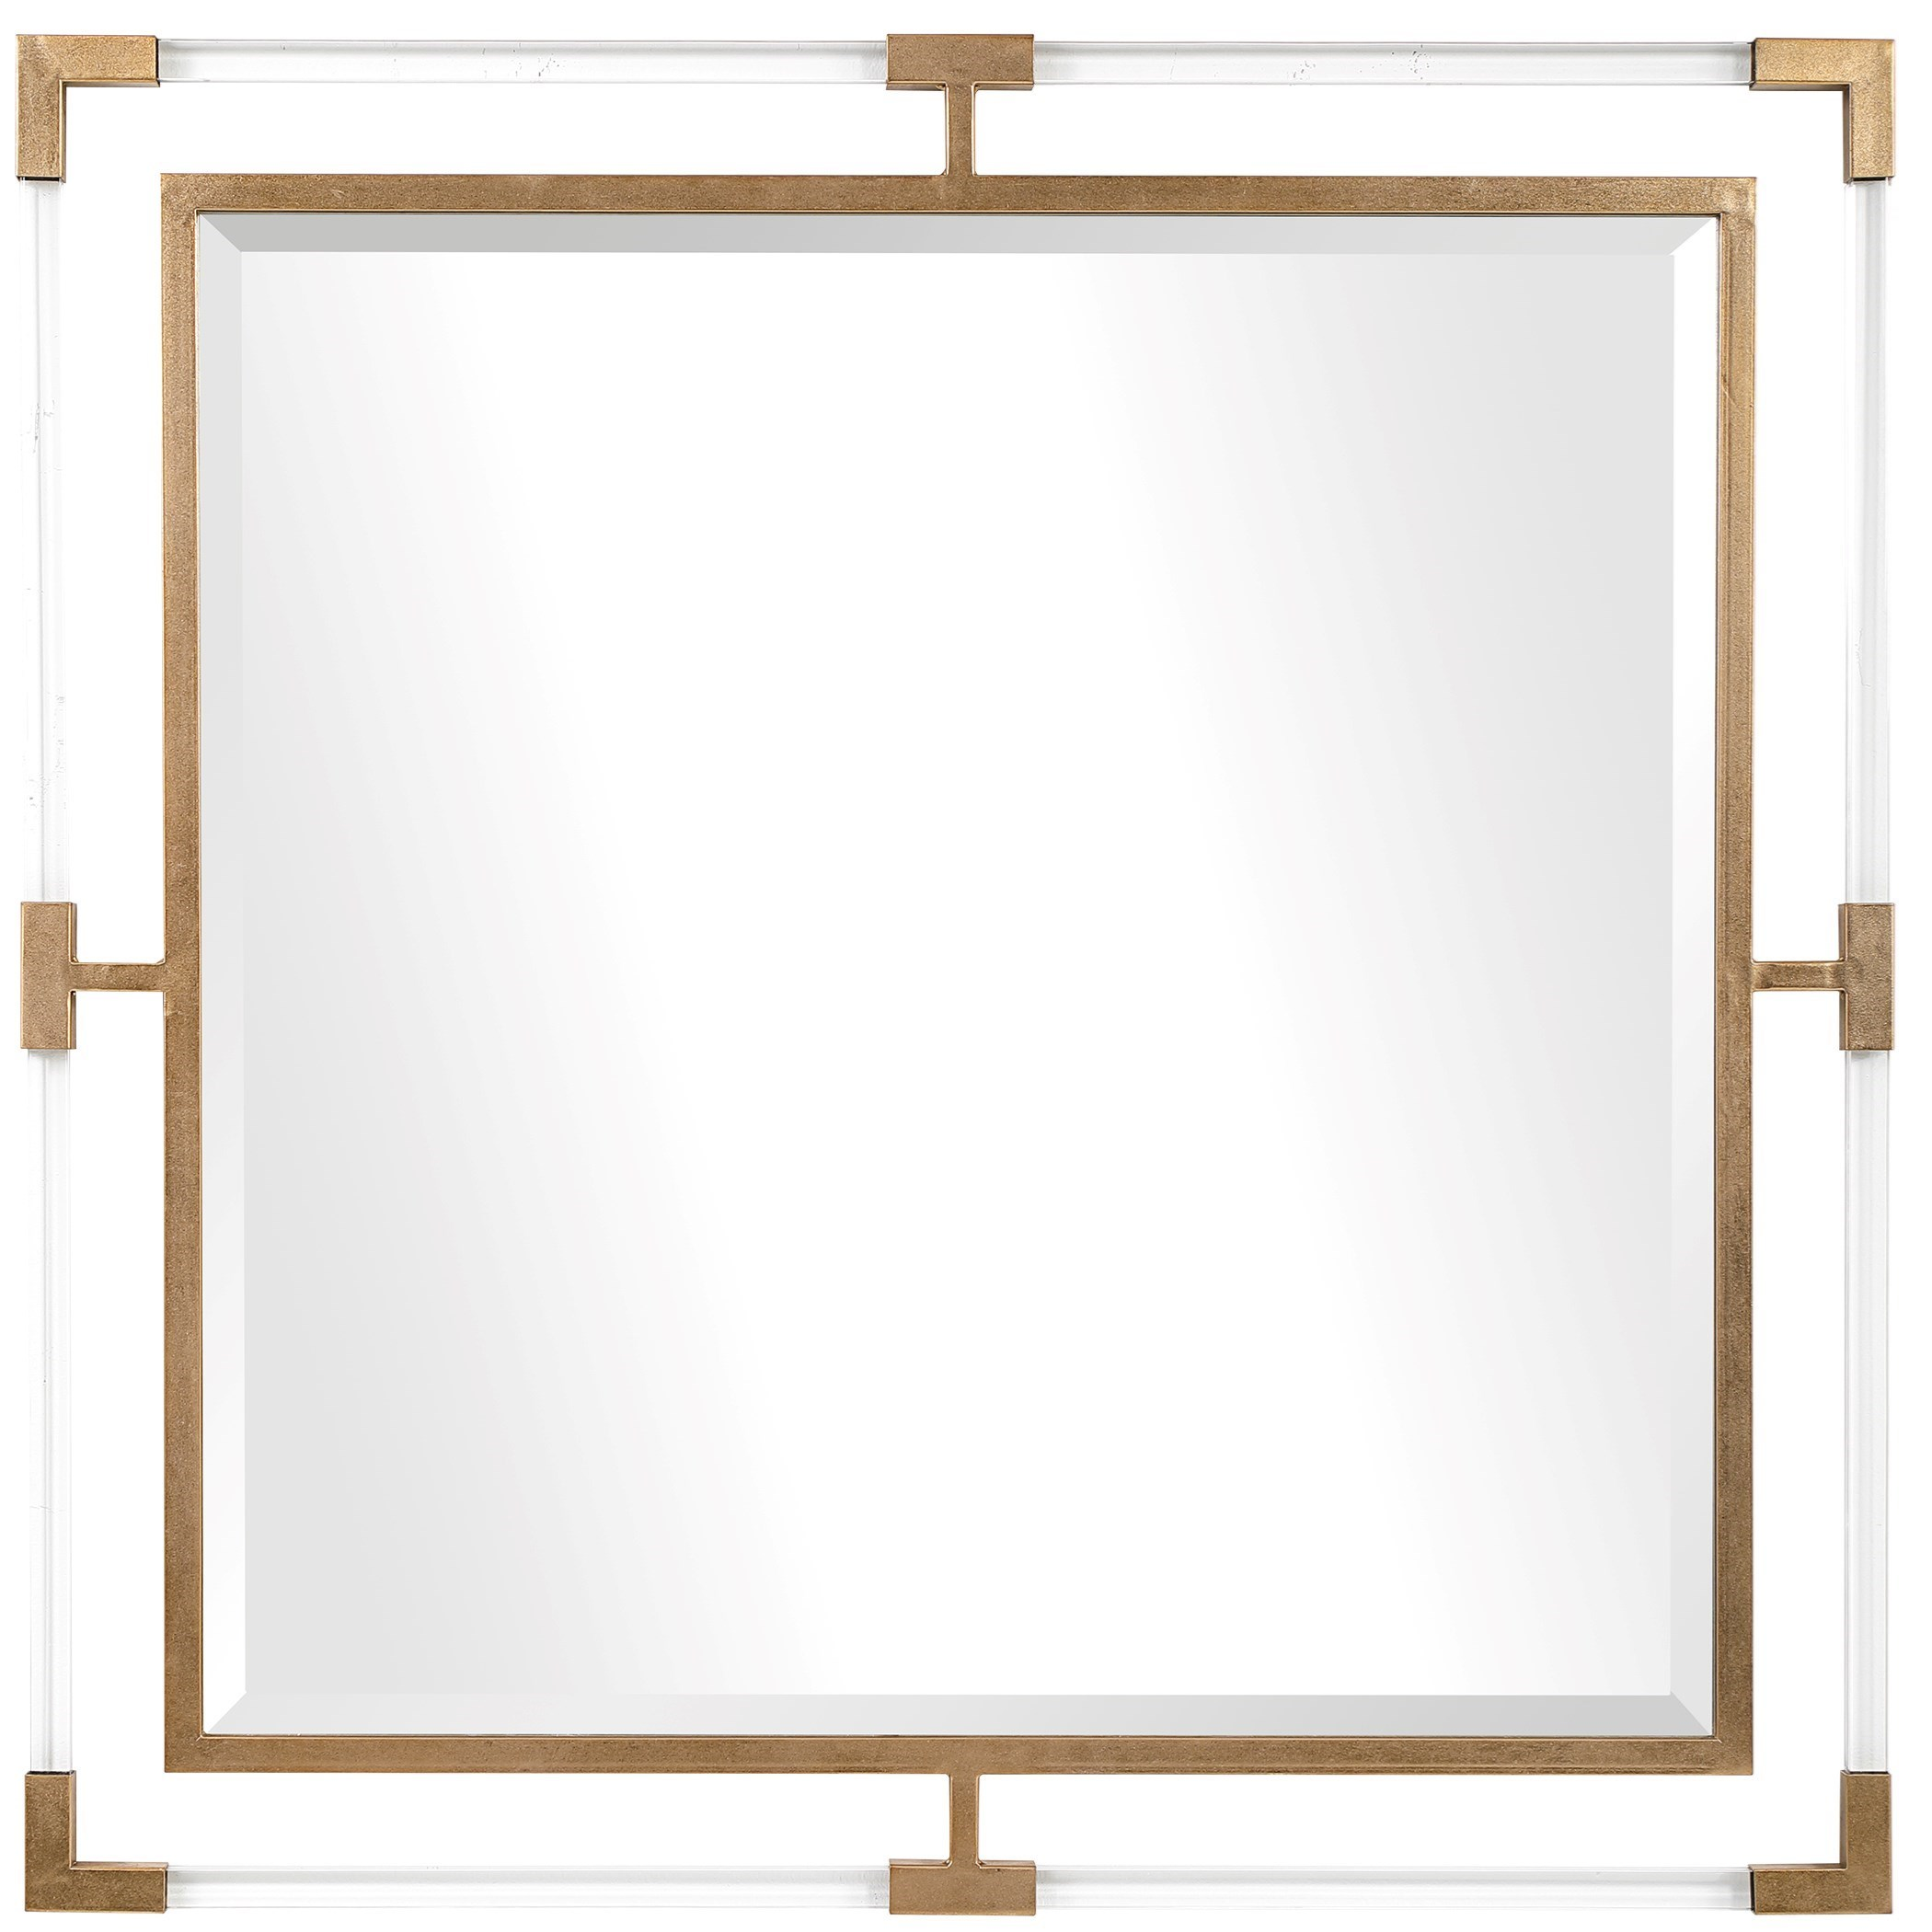 Mirrors Balkan Golden Square Mirror by Uttermost at Miller Waldrop Furniture and Decor